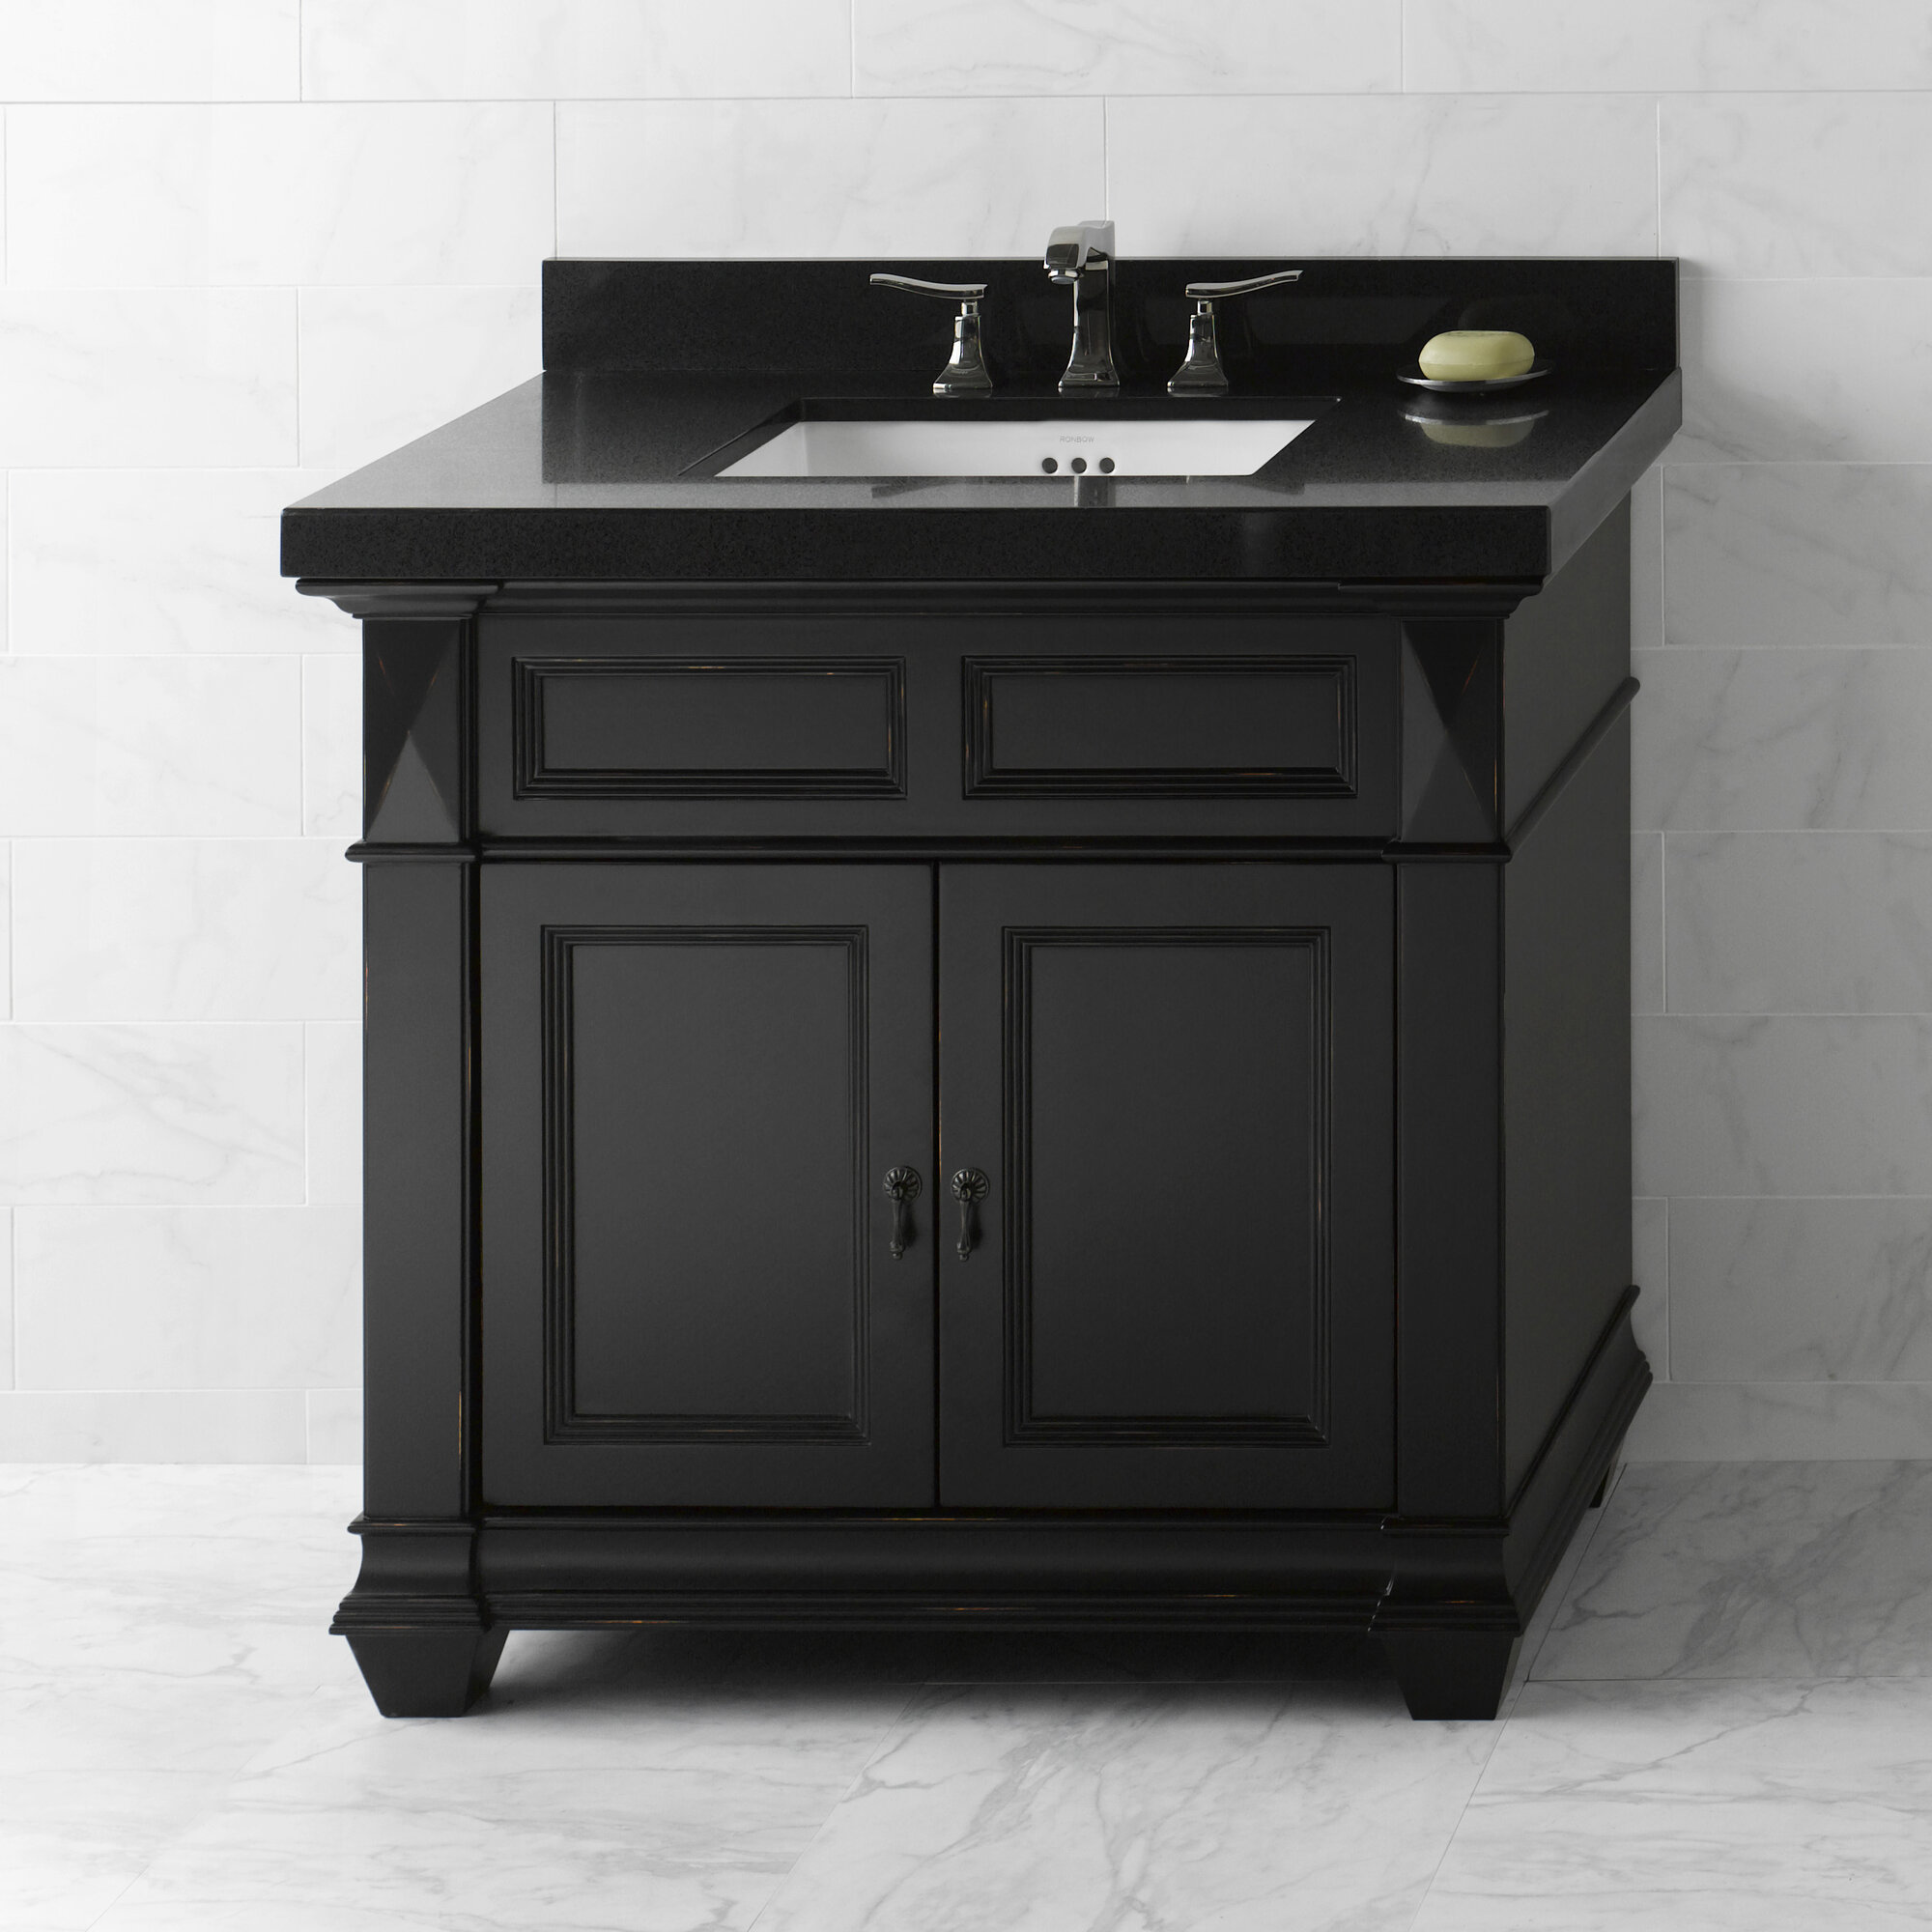 Ronbow torino 36 bathroom vanity cabinet base in antique black ebay - Bathroom vanity cabinet base only ...